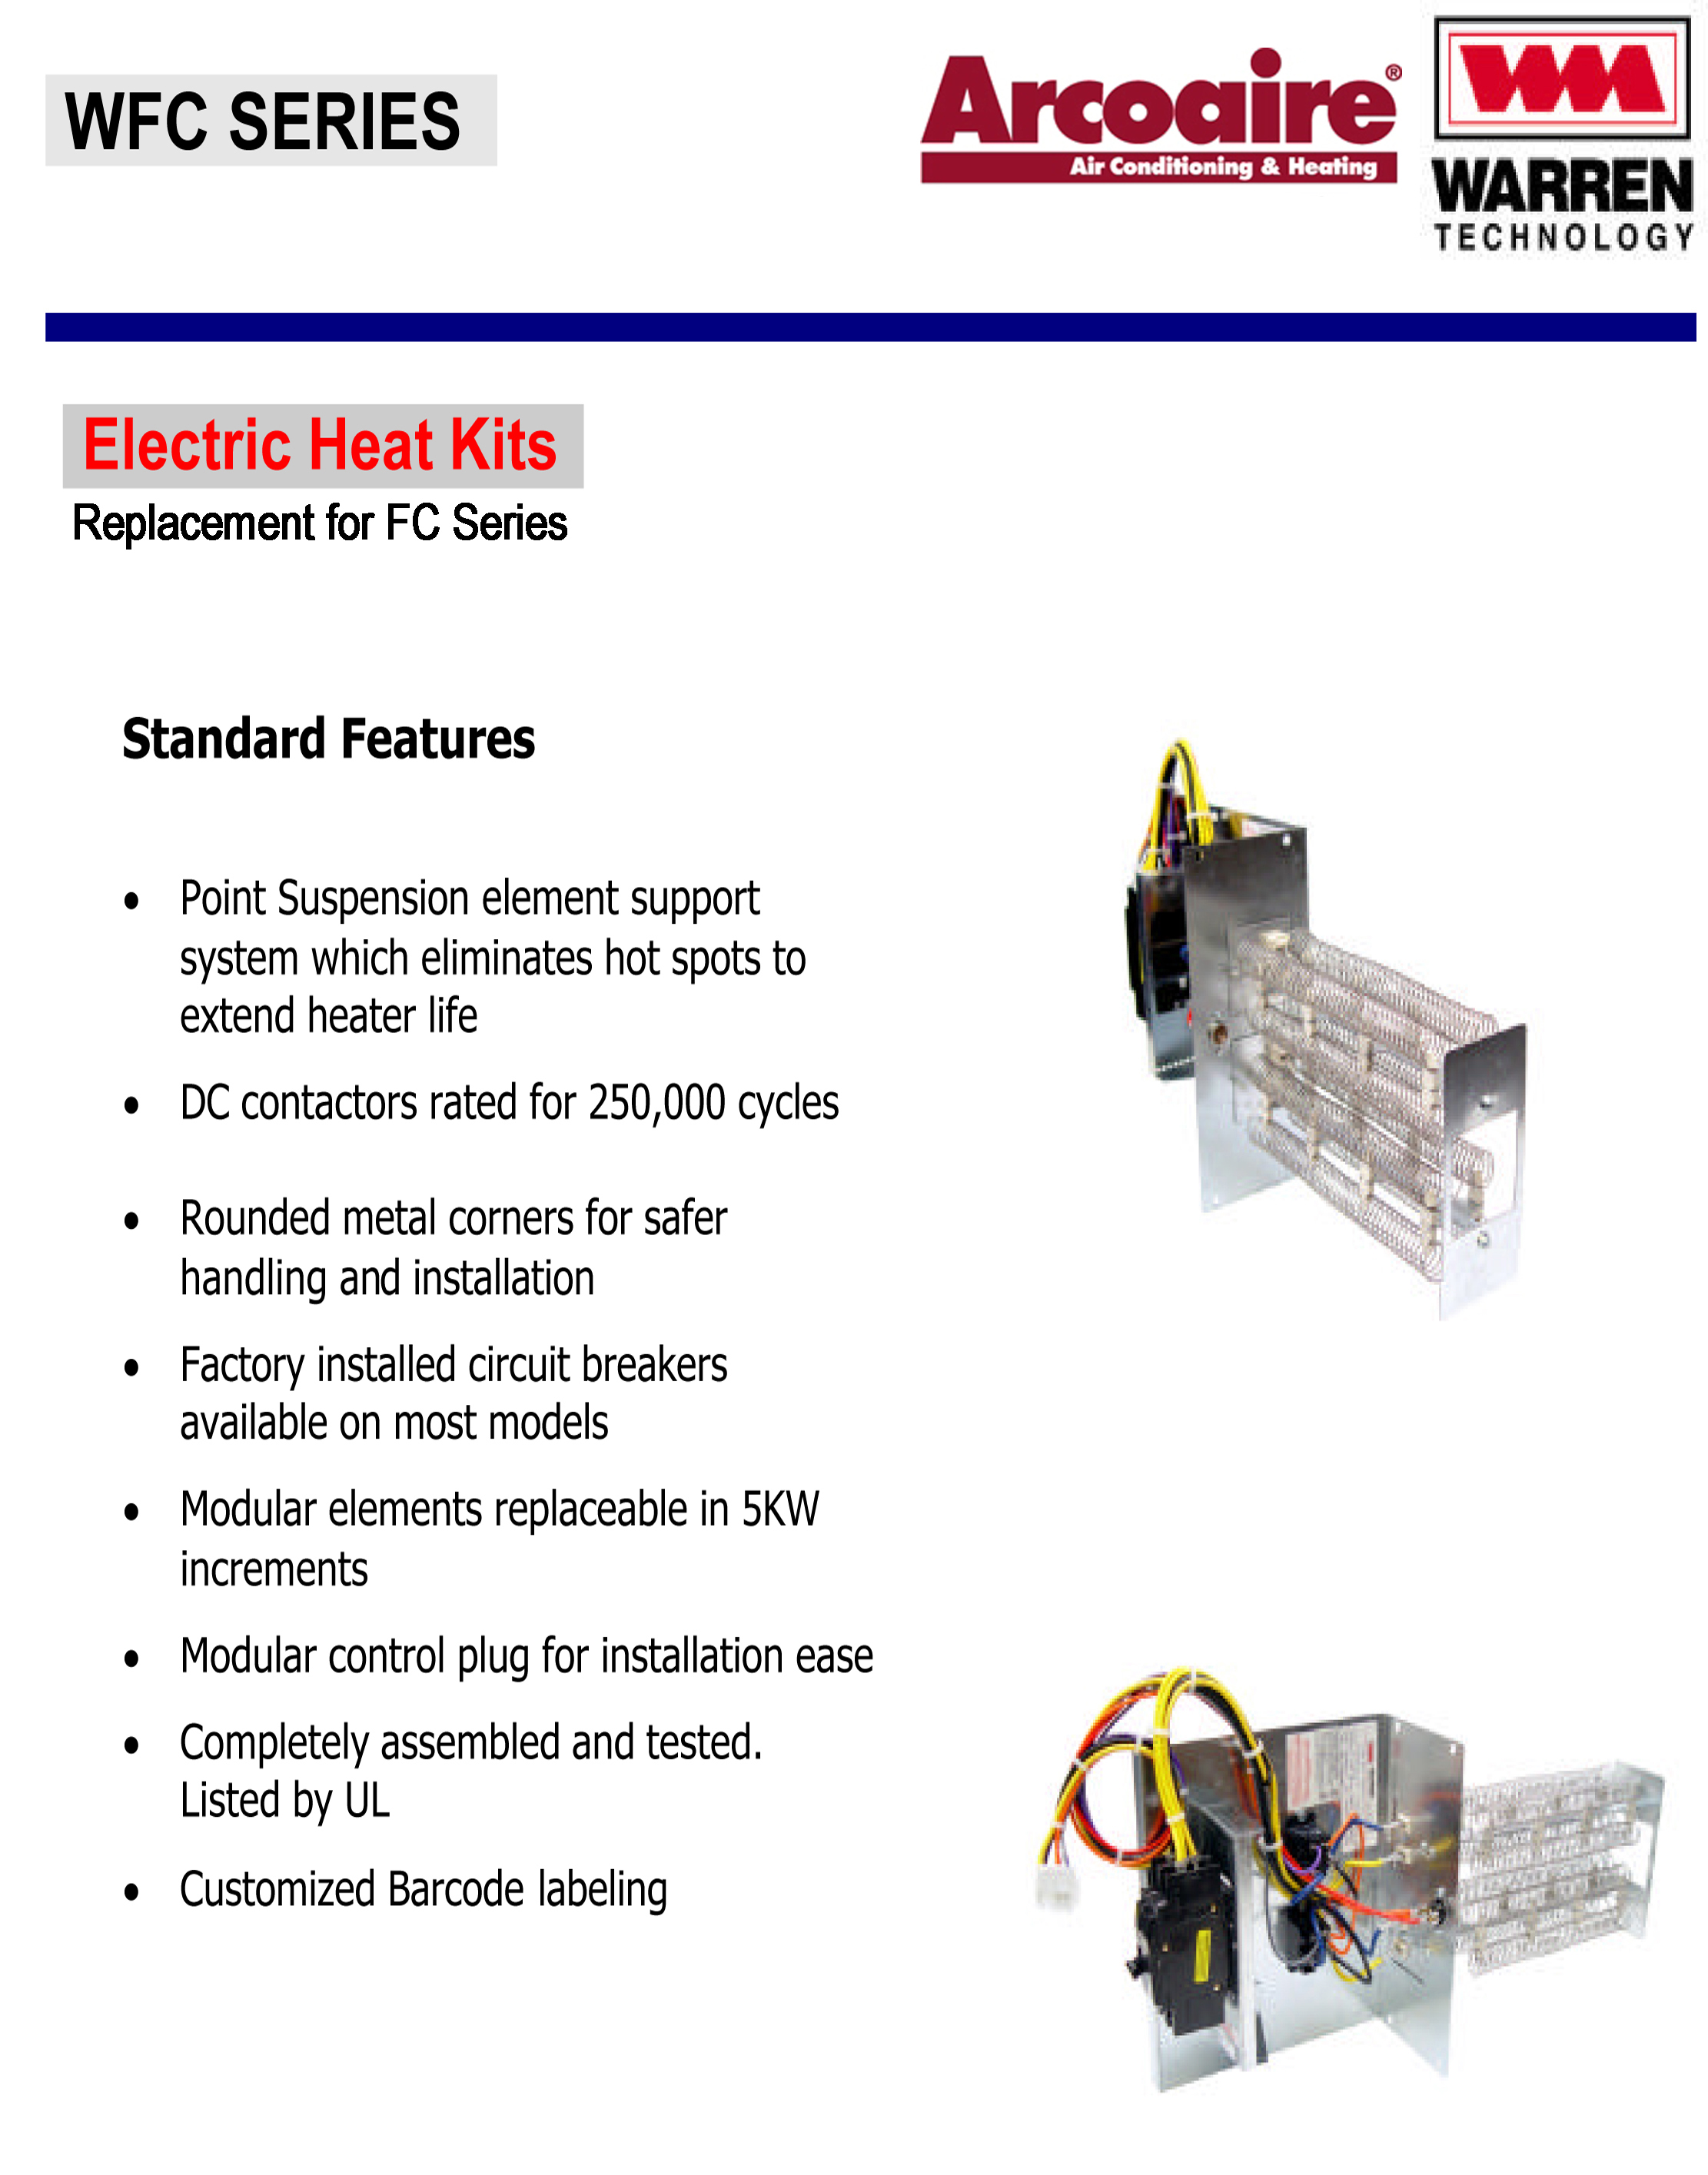 arcoaire wfc brochure copy 15 kw breakered heat strip for arcoaire air handlers fcv, fcp, fcx international comfort products wiring diagram at alyssarenee.co